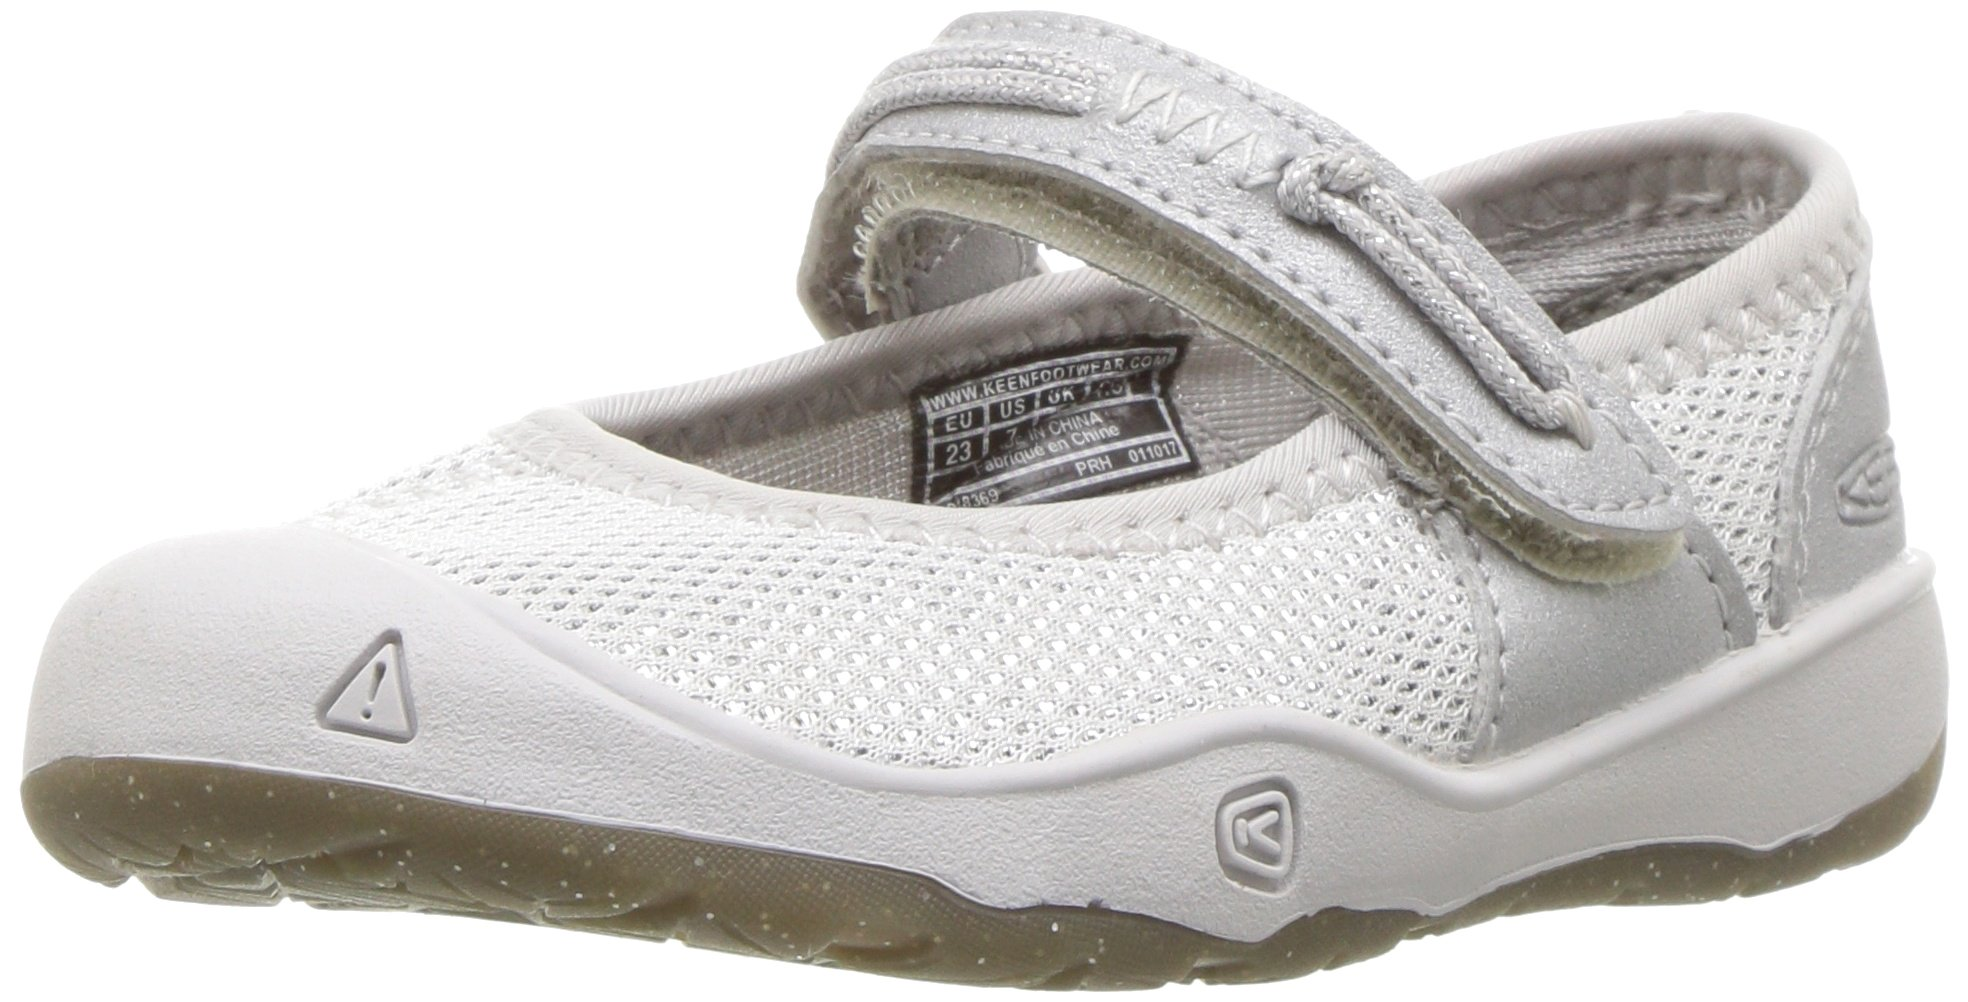 KEEN Unisex-Kids Moxie Mary Jane, Silver, 6 Youth US Big Kid